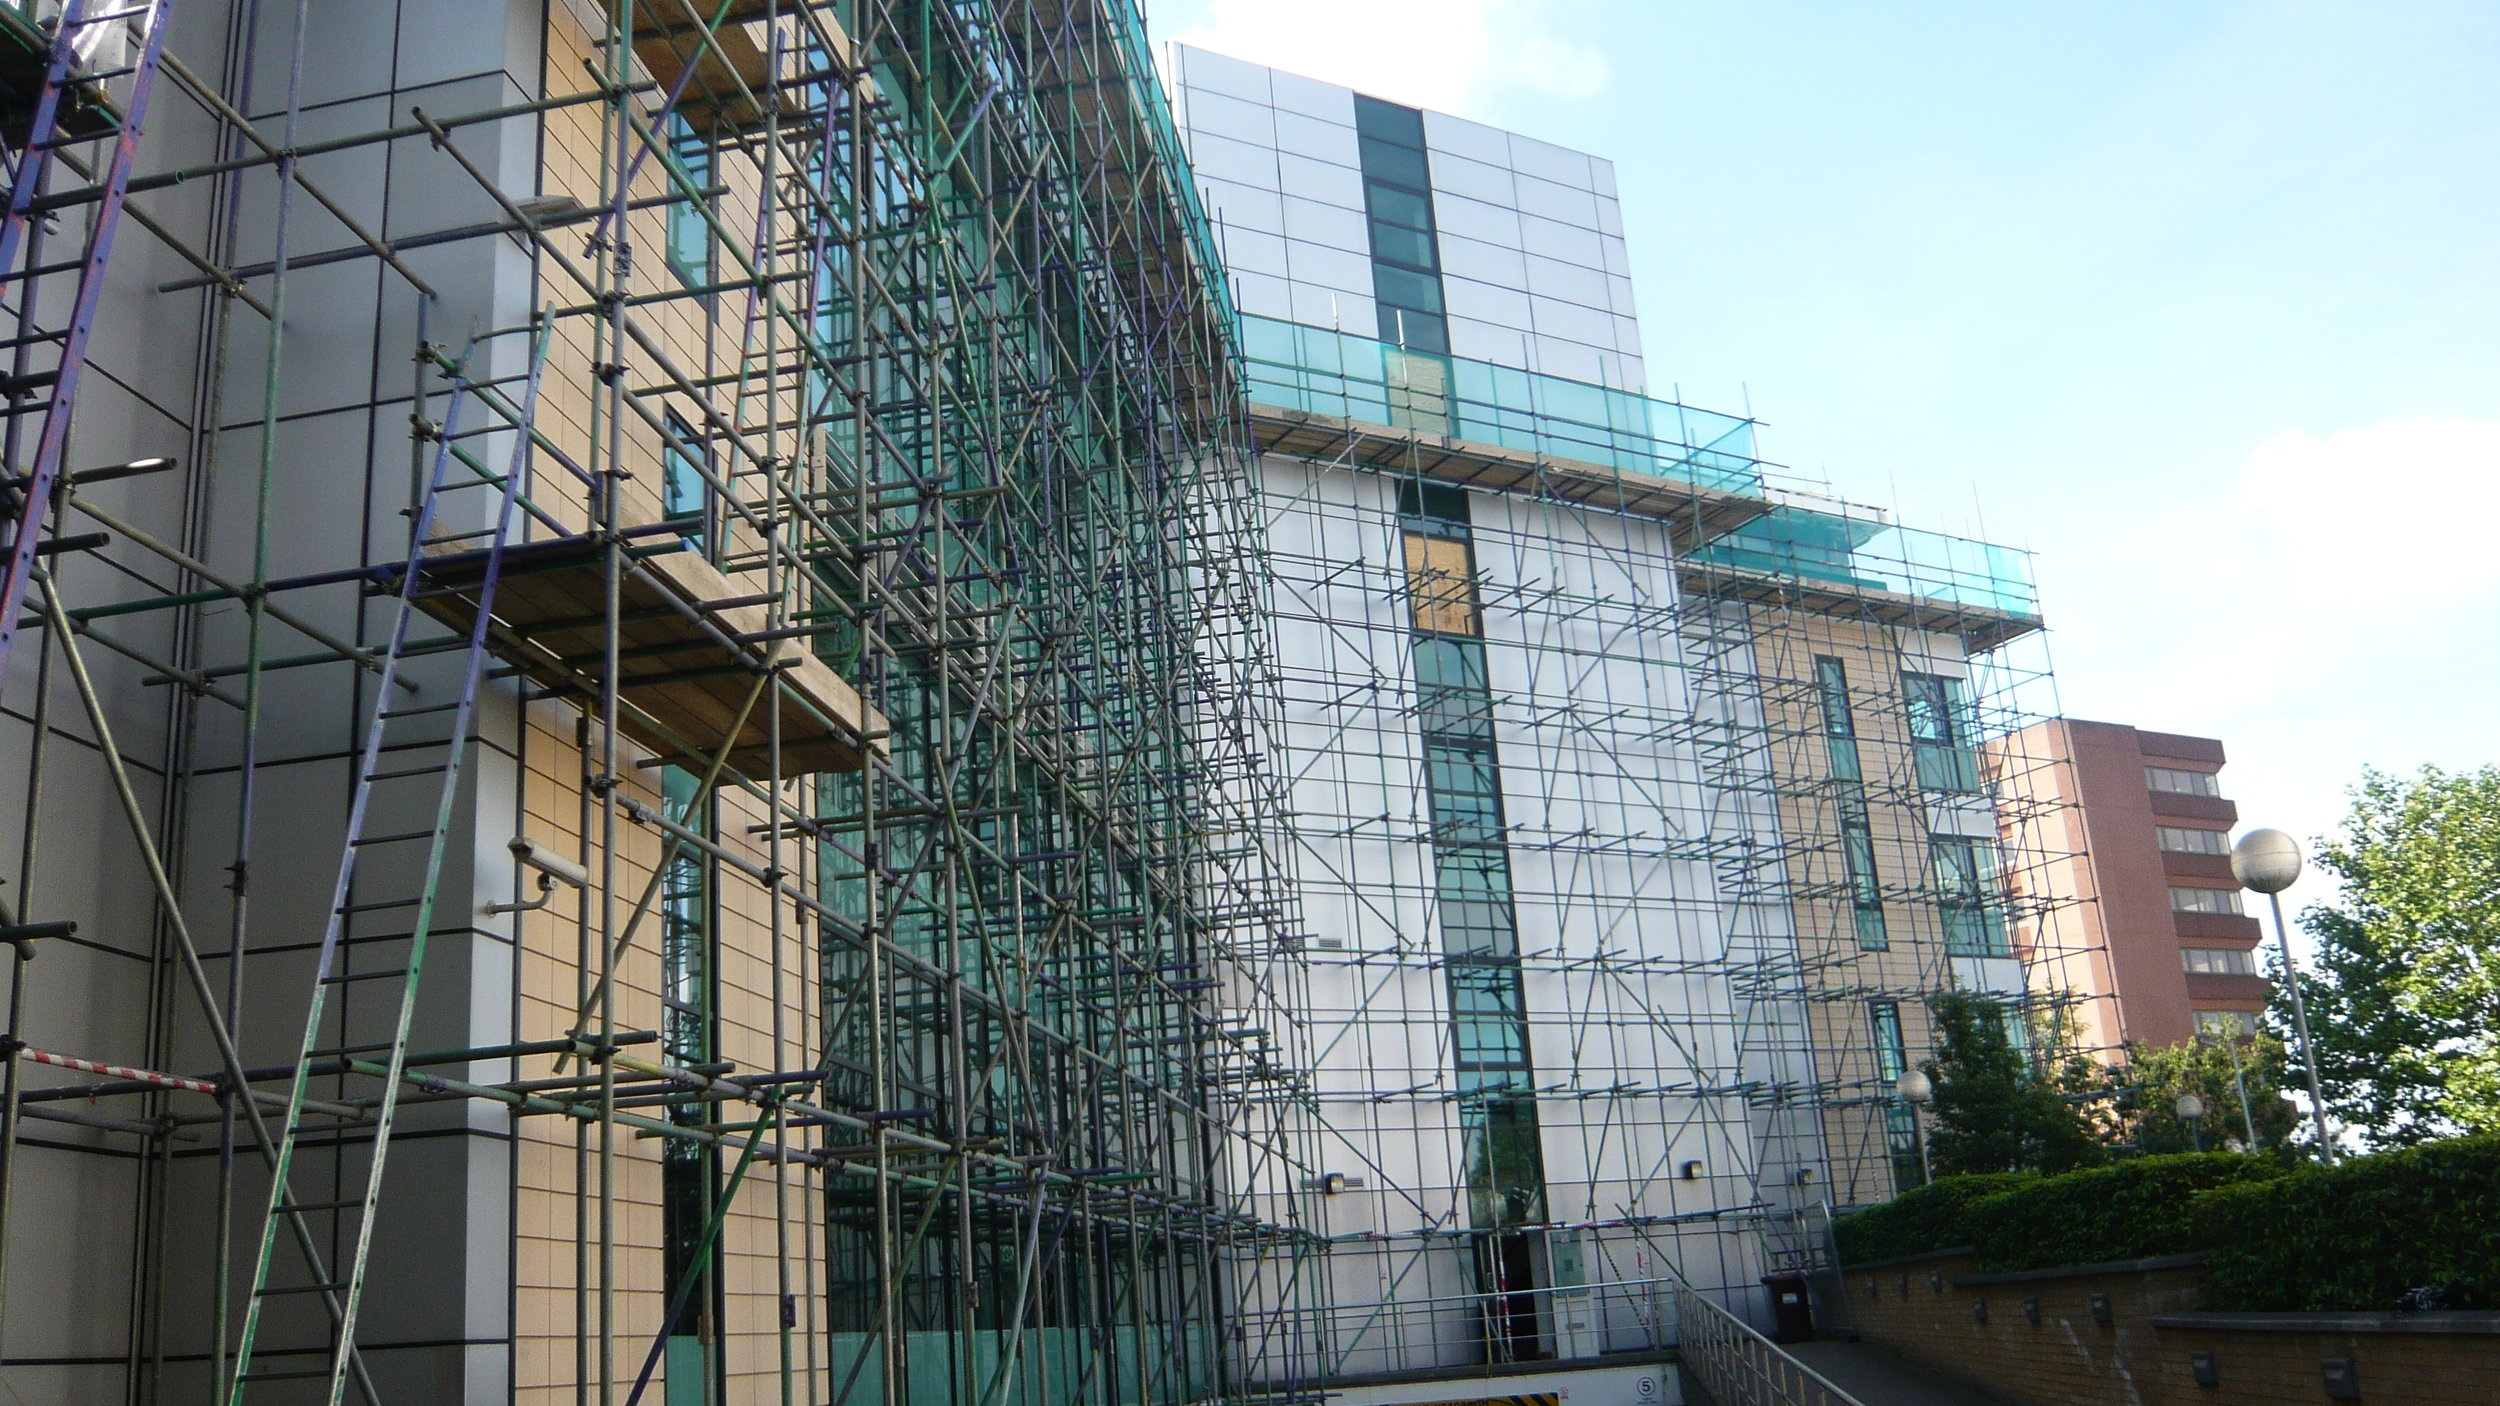 Contract Scaffolding - From single storey to multi storey projects, we cover all of your scaffolding and access requirements including engineered design.